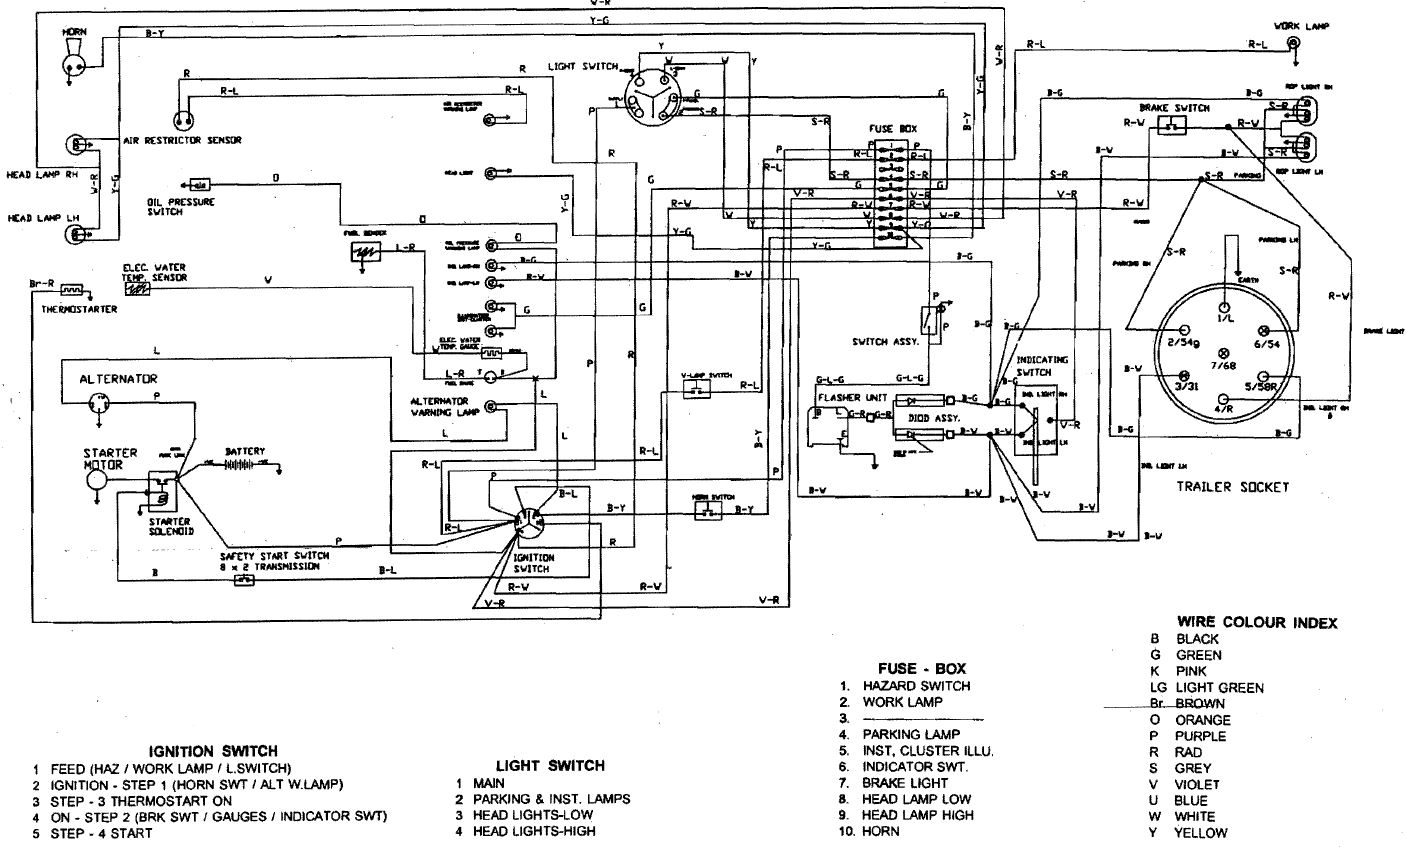 john deere 165 wiring diagram free picture wiring diagram  ford 3610 tractor wiring diagram free download wiring diagramford 1220 tractor wiring diagram data wiring diagram